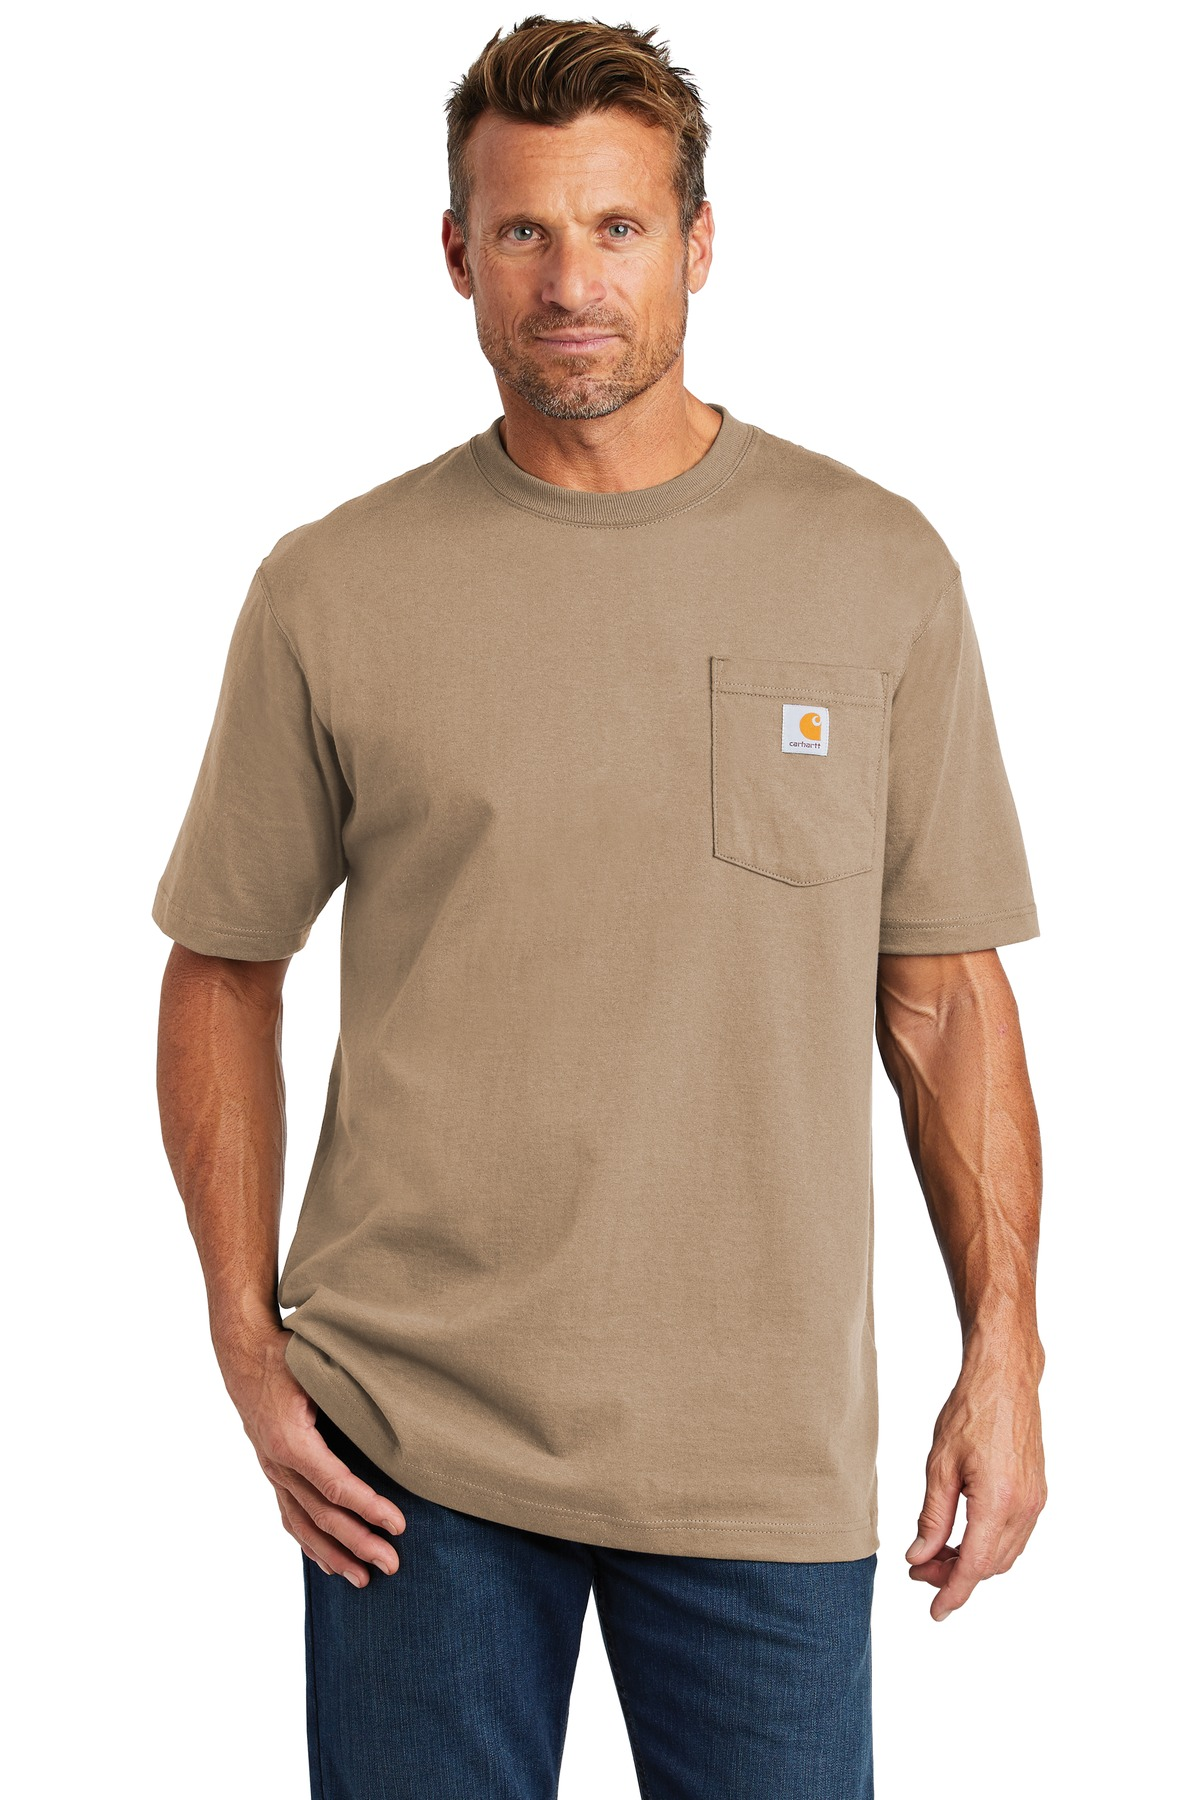 Carhartt  ®  Tall Workwear Pocket Short Sleeve T-Shirt. CTTK87 - Desert